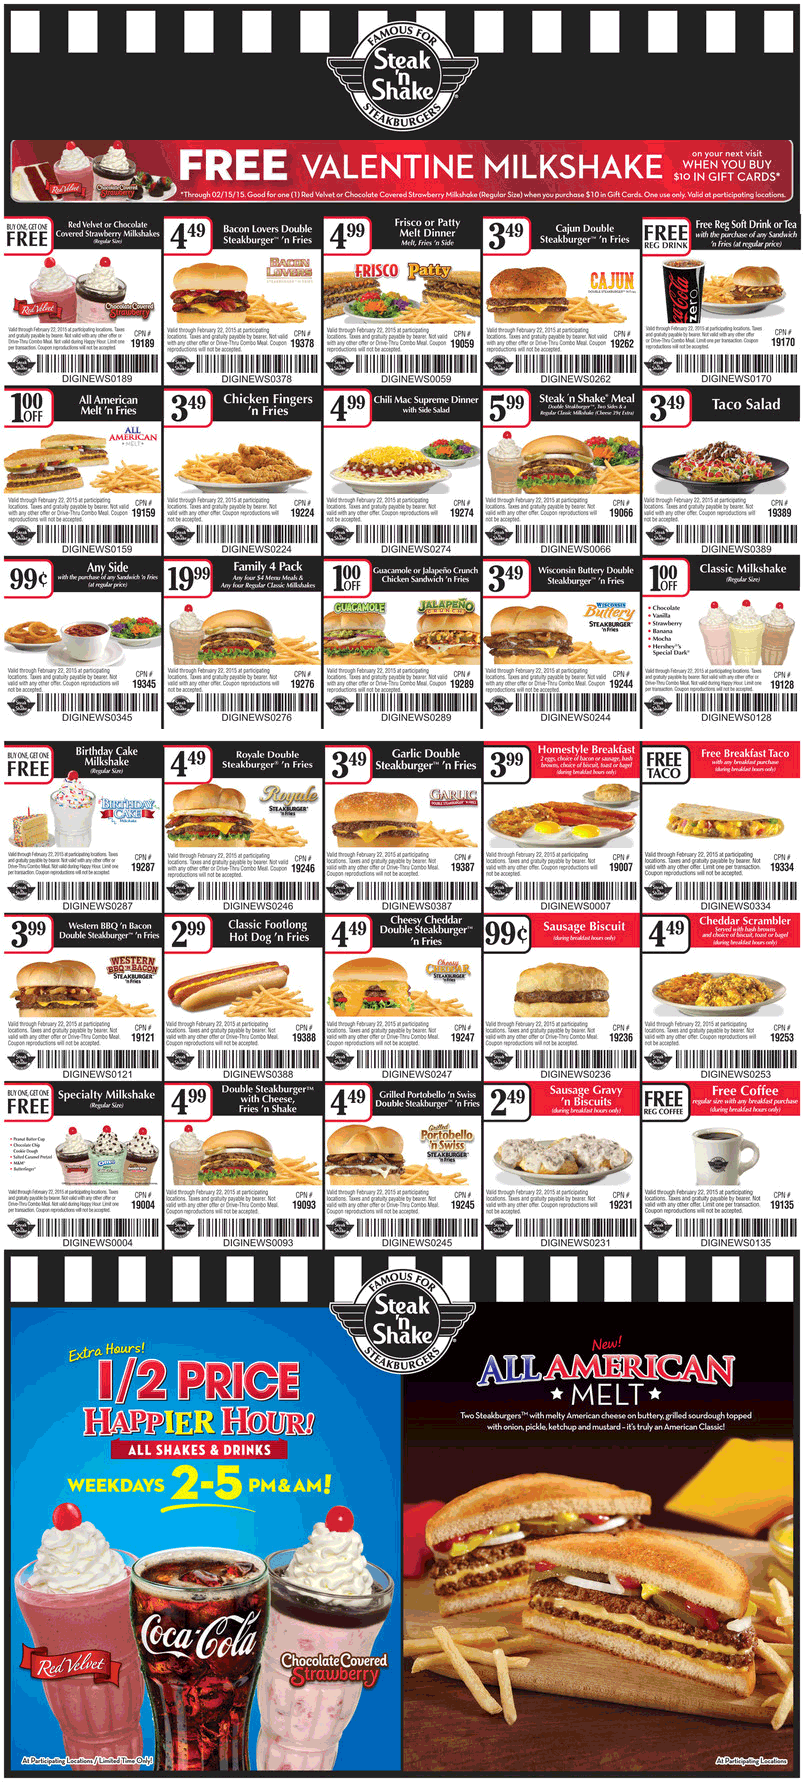 Steak and shake coupon codes